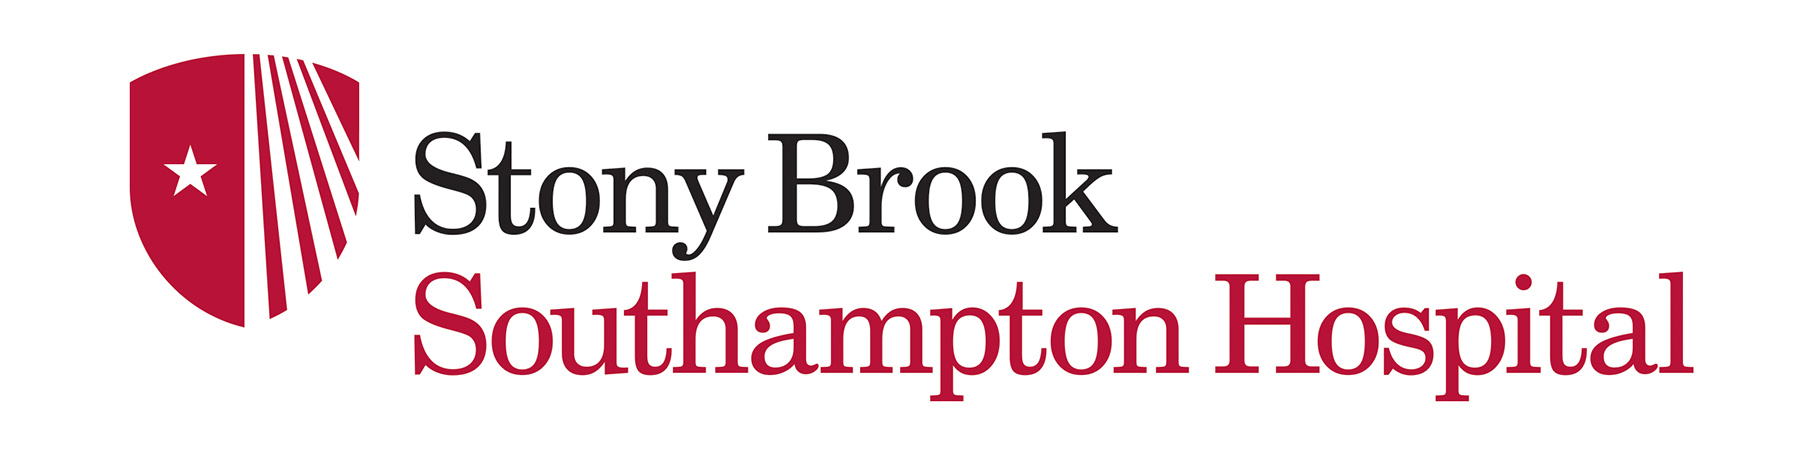 Stony Brook Southampton Hospital logo